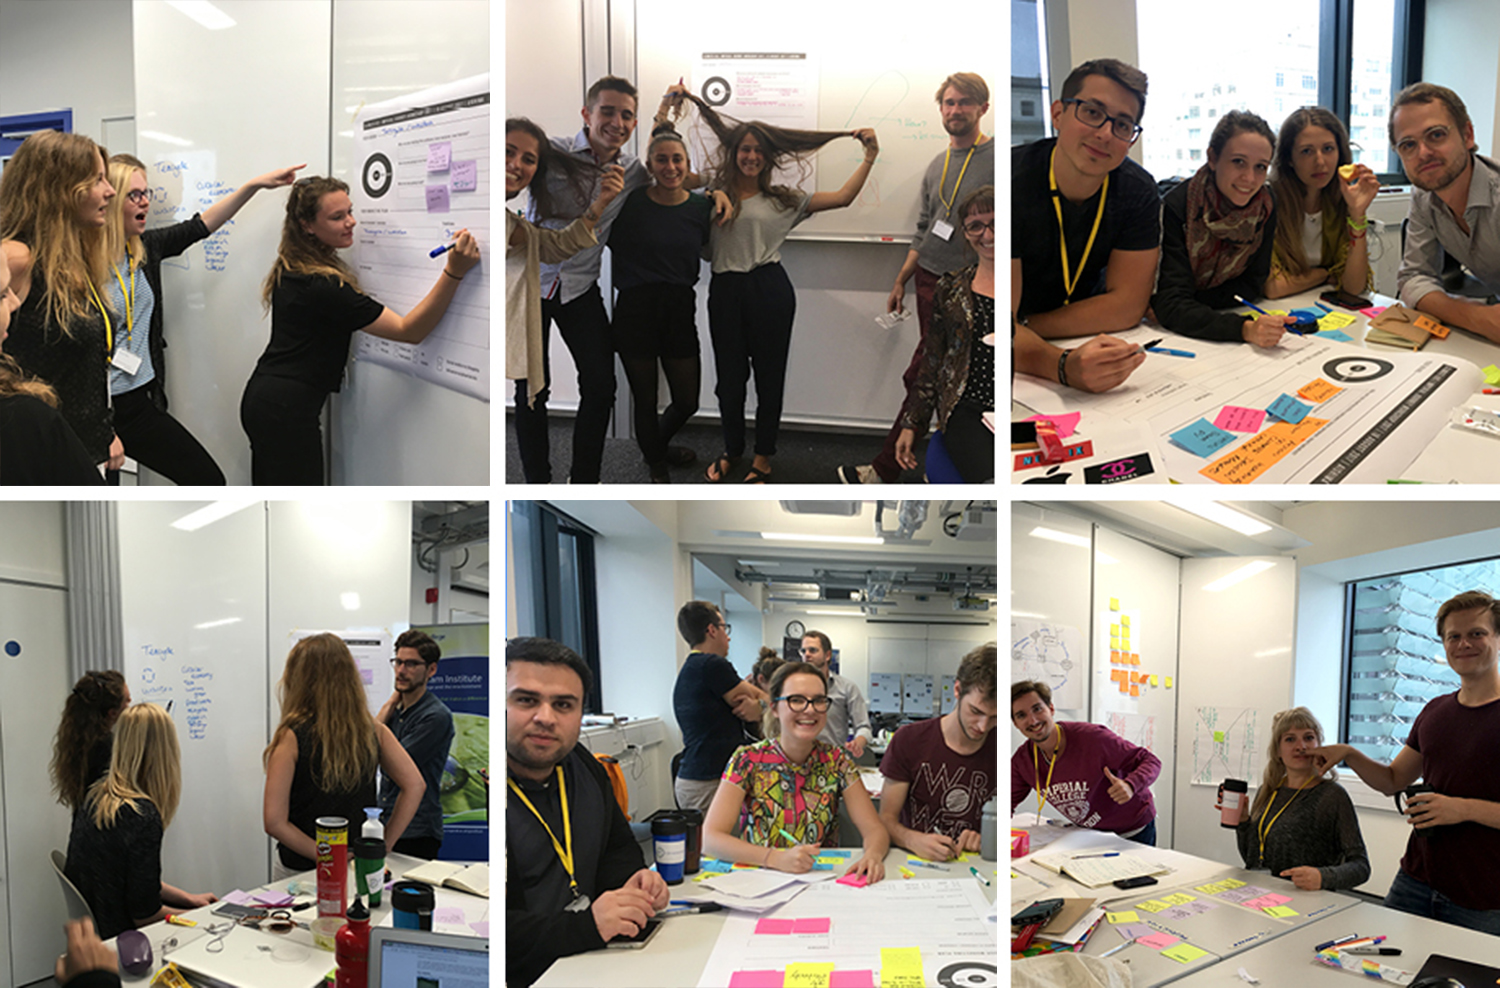 Some pics from the teams and their project ideas